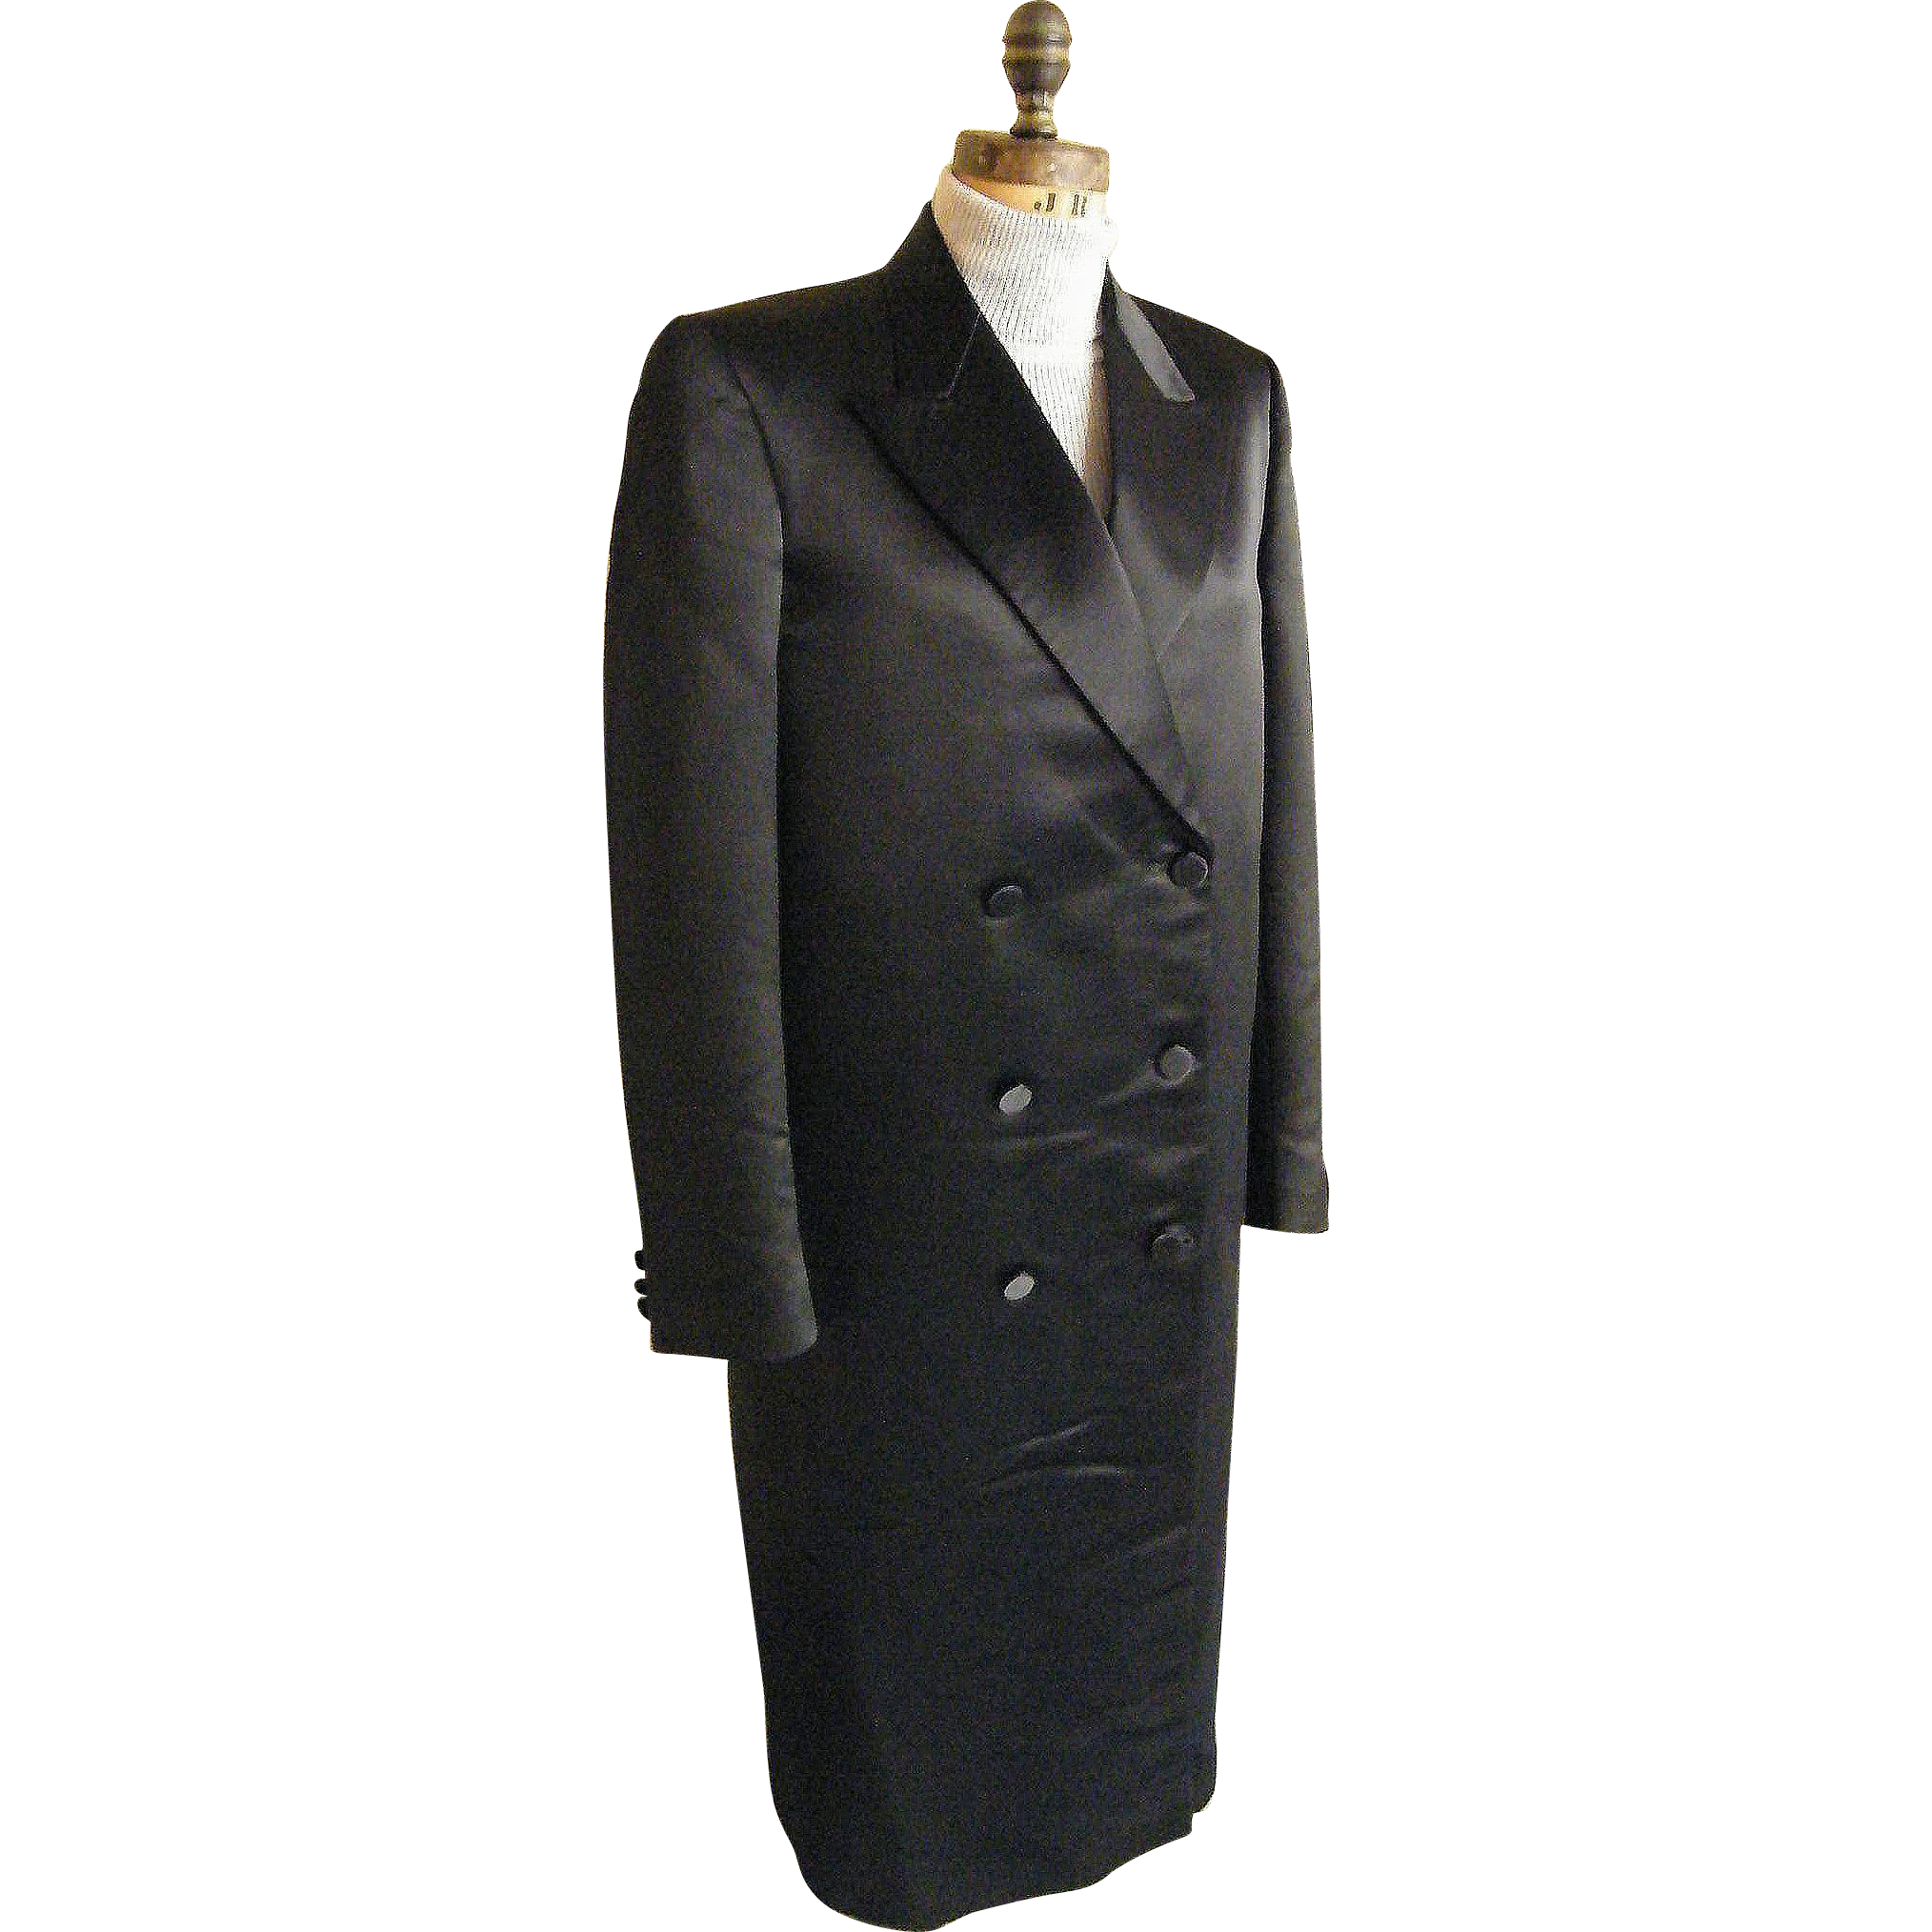 Men's Black Satin Long Opera Coat...Tuxedo Coat...Double Breasted...By G&G Quality Clothing..Size 36L..Excellent Condition!